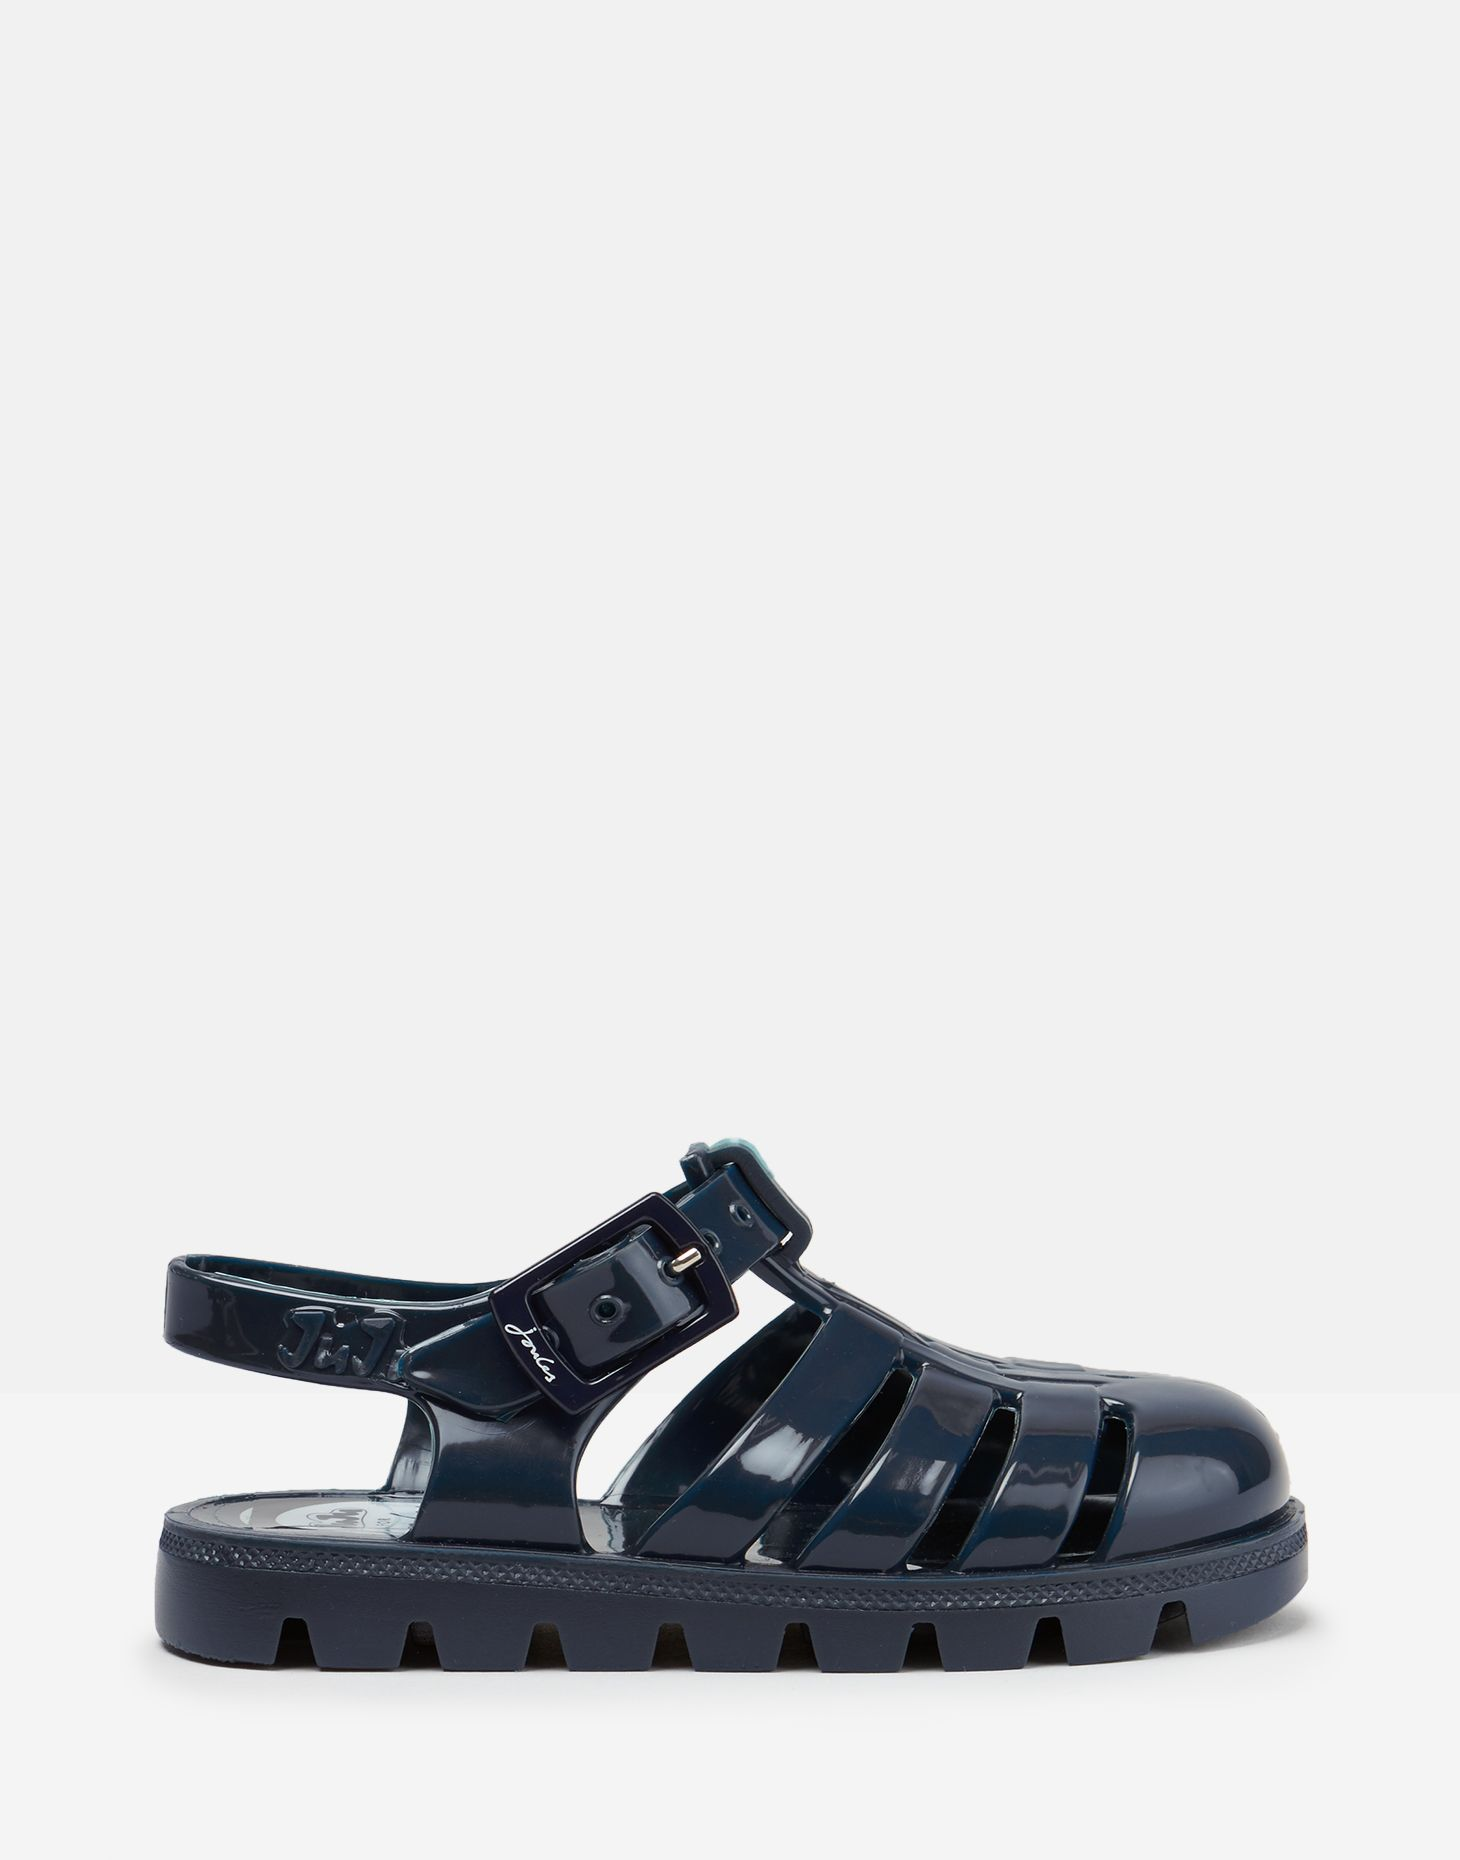 6d567f10ea6f Juju jelly shoe FRENCH NAVY Sandals